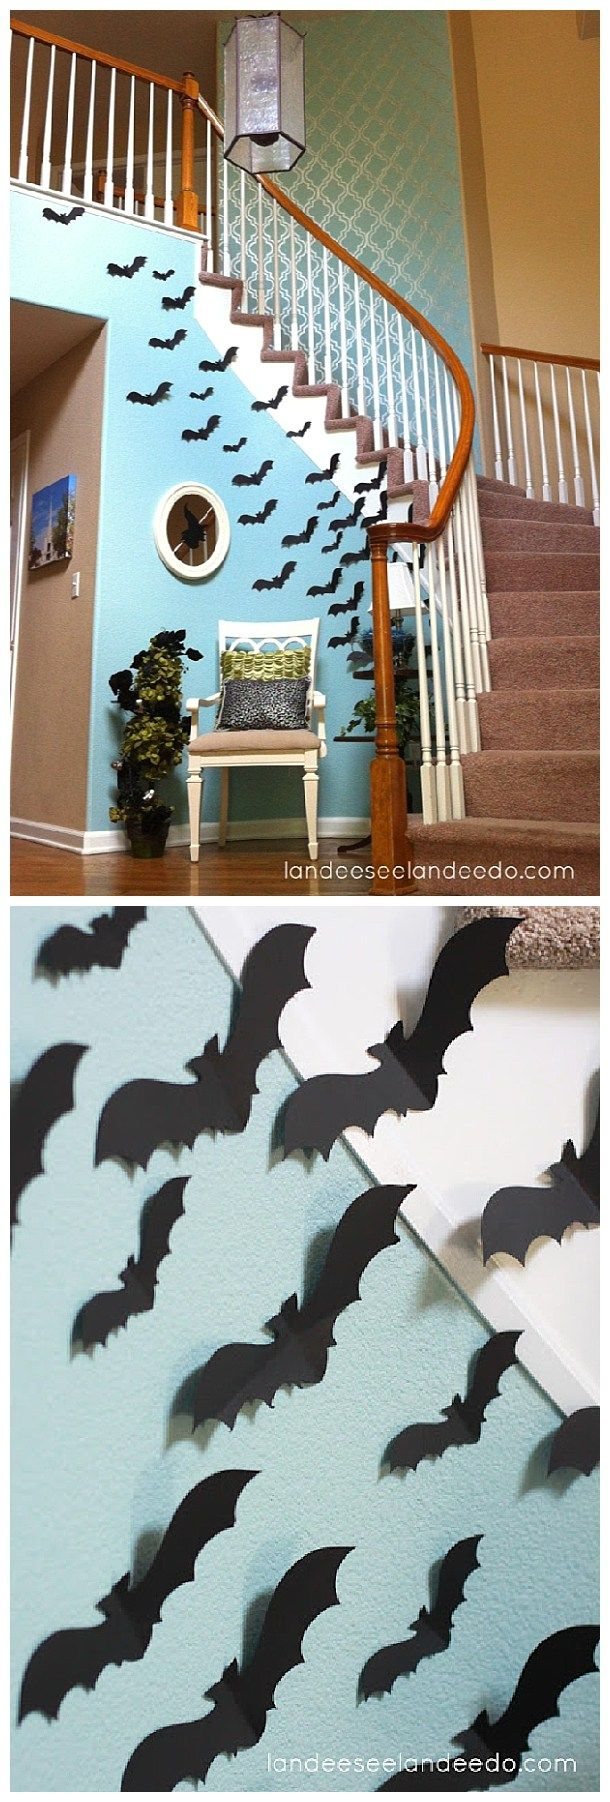 17 best images about halloween staircase stairs on - Halloween decorations to make yourself ...